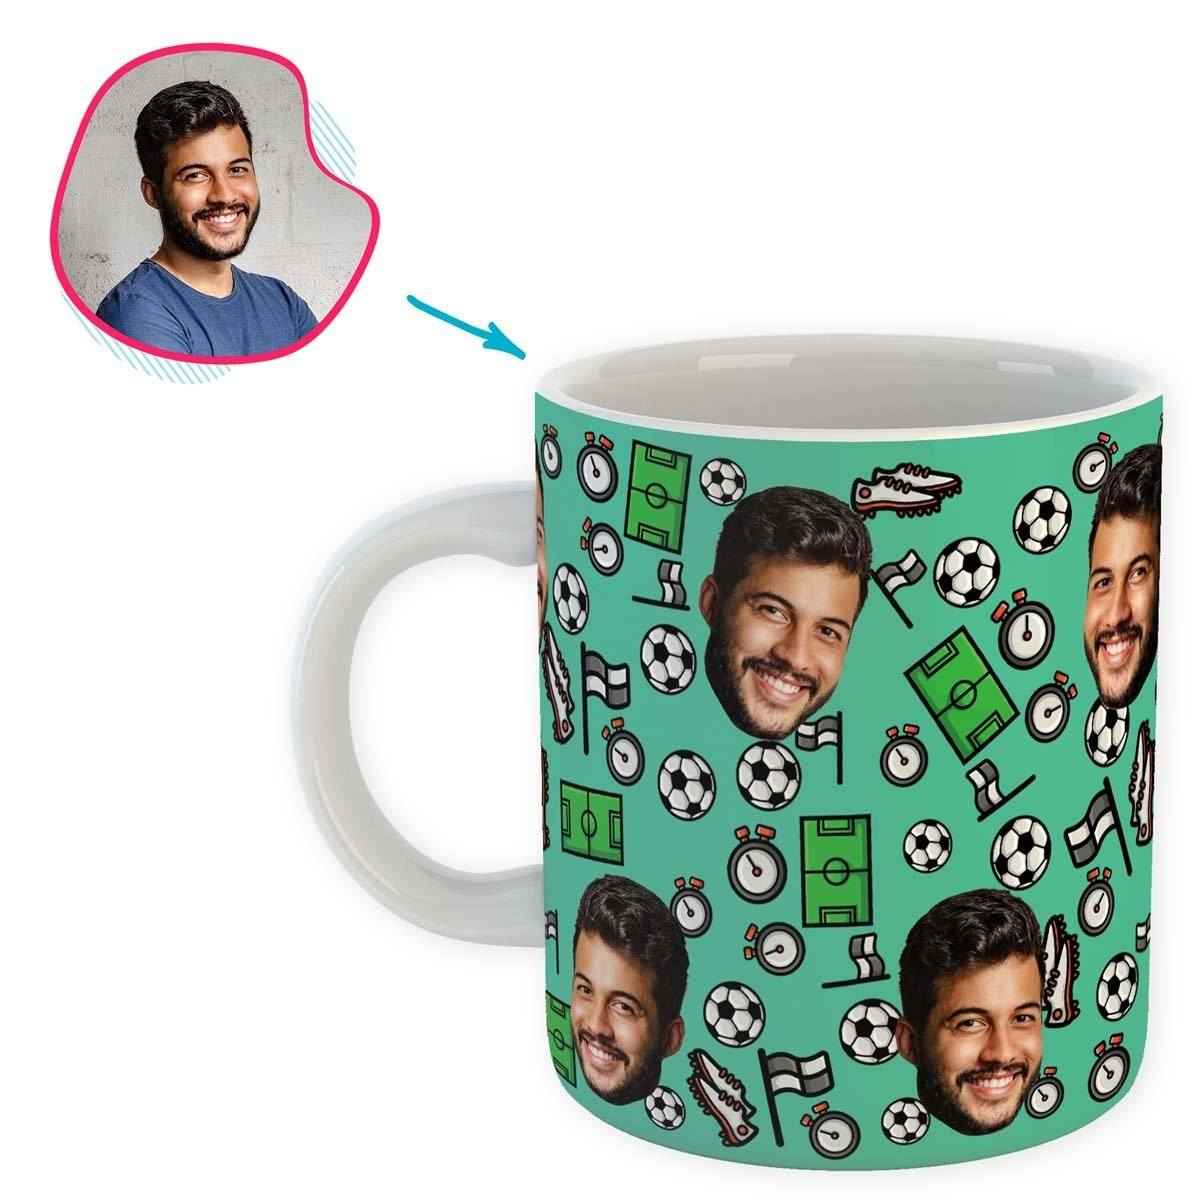 mint Football mug personalized with photo of face printed on it